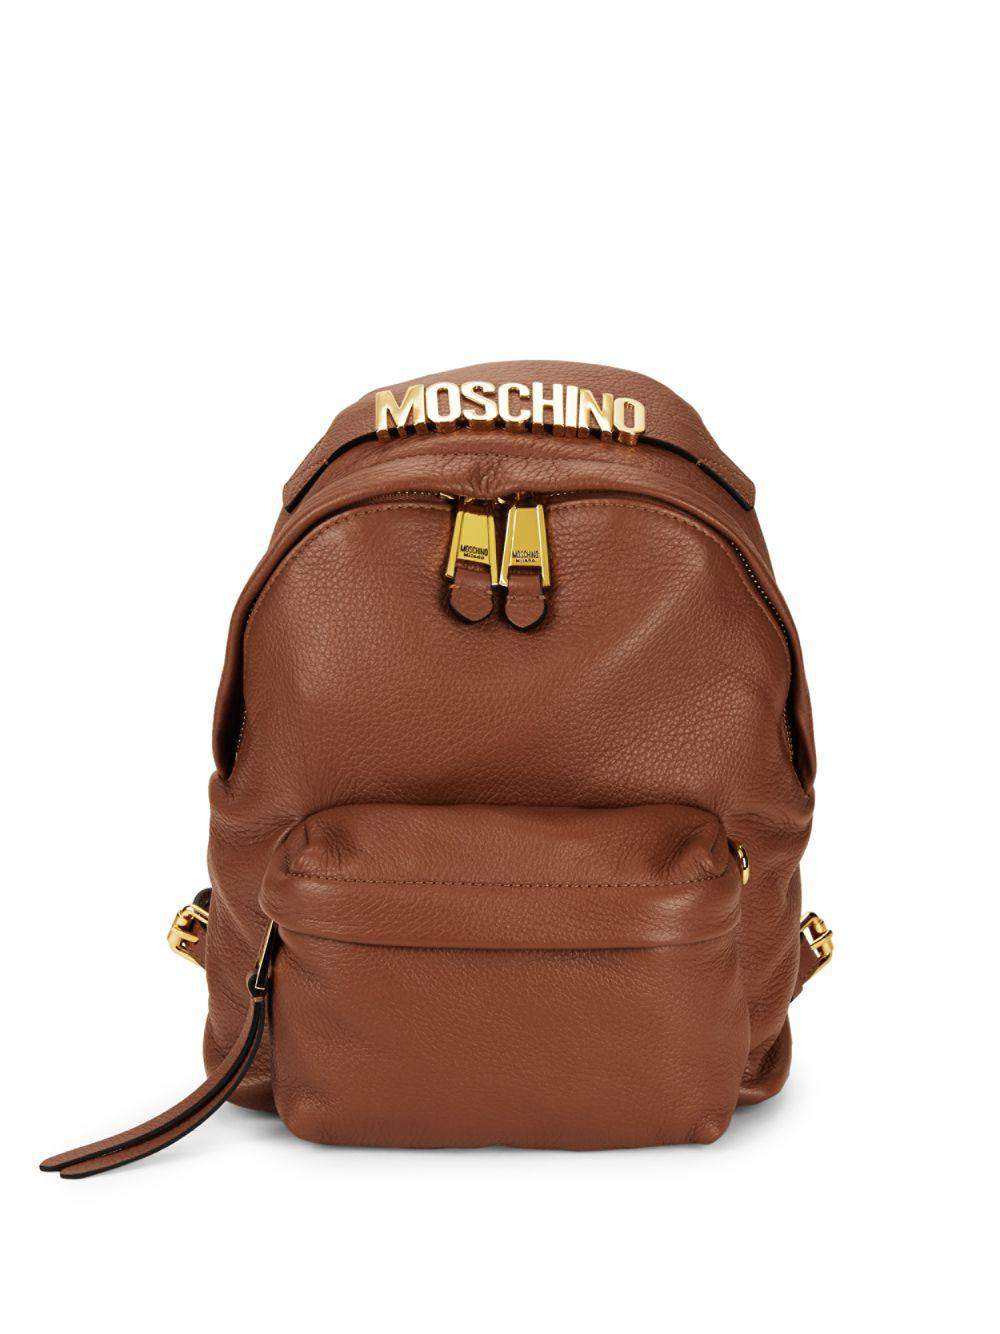 c65435556bea4 Lyst - Moschino Logo Leather Backpack in Brown